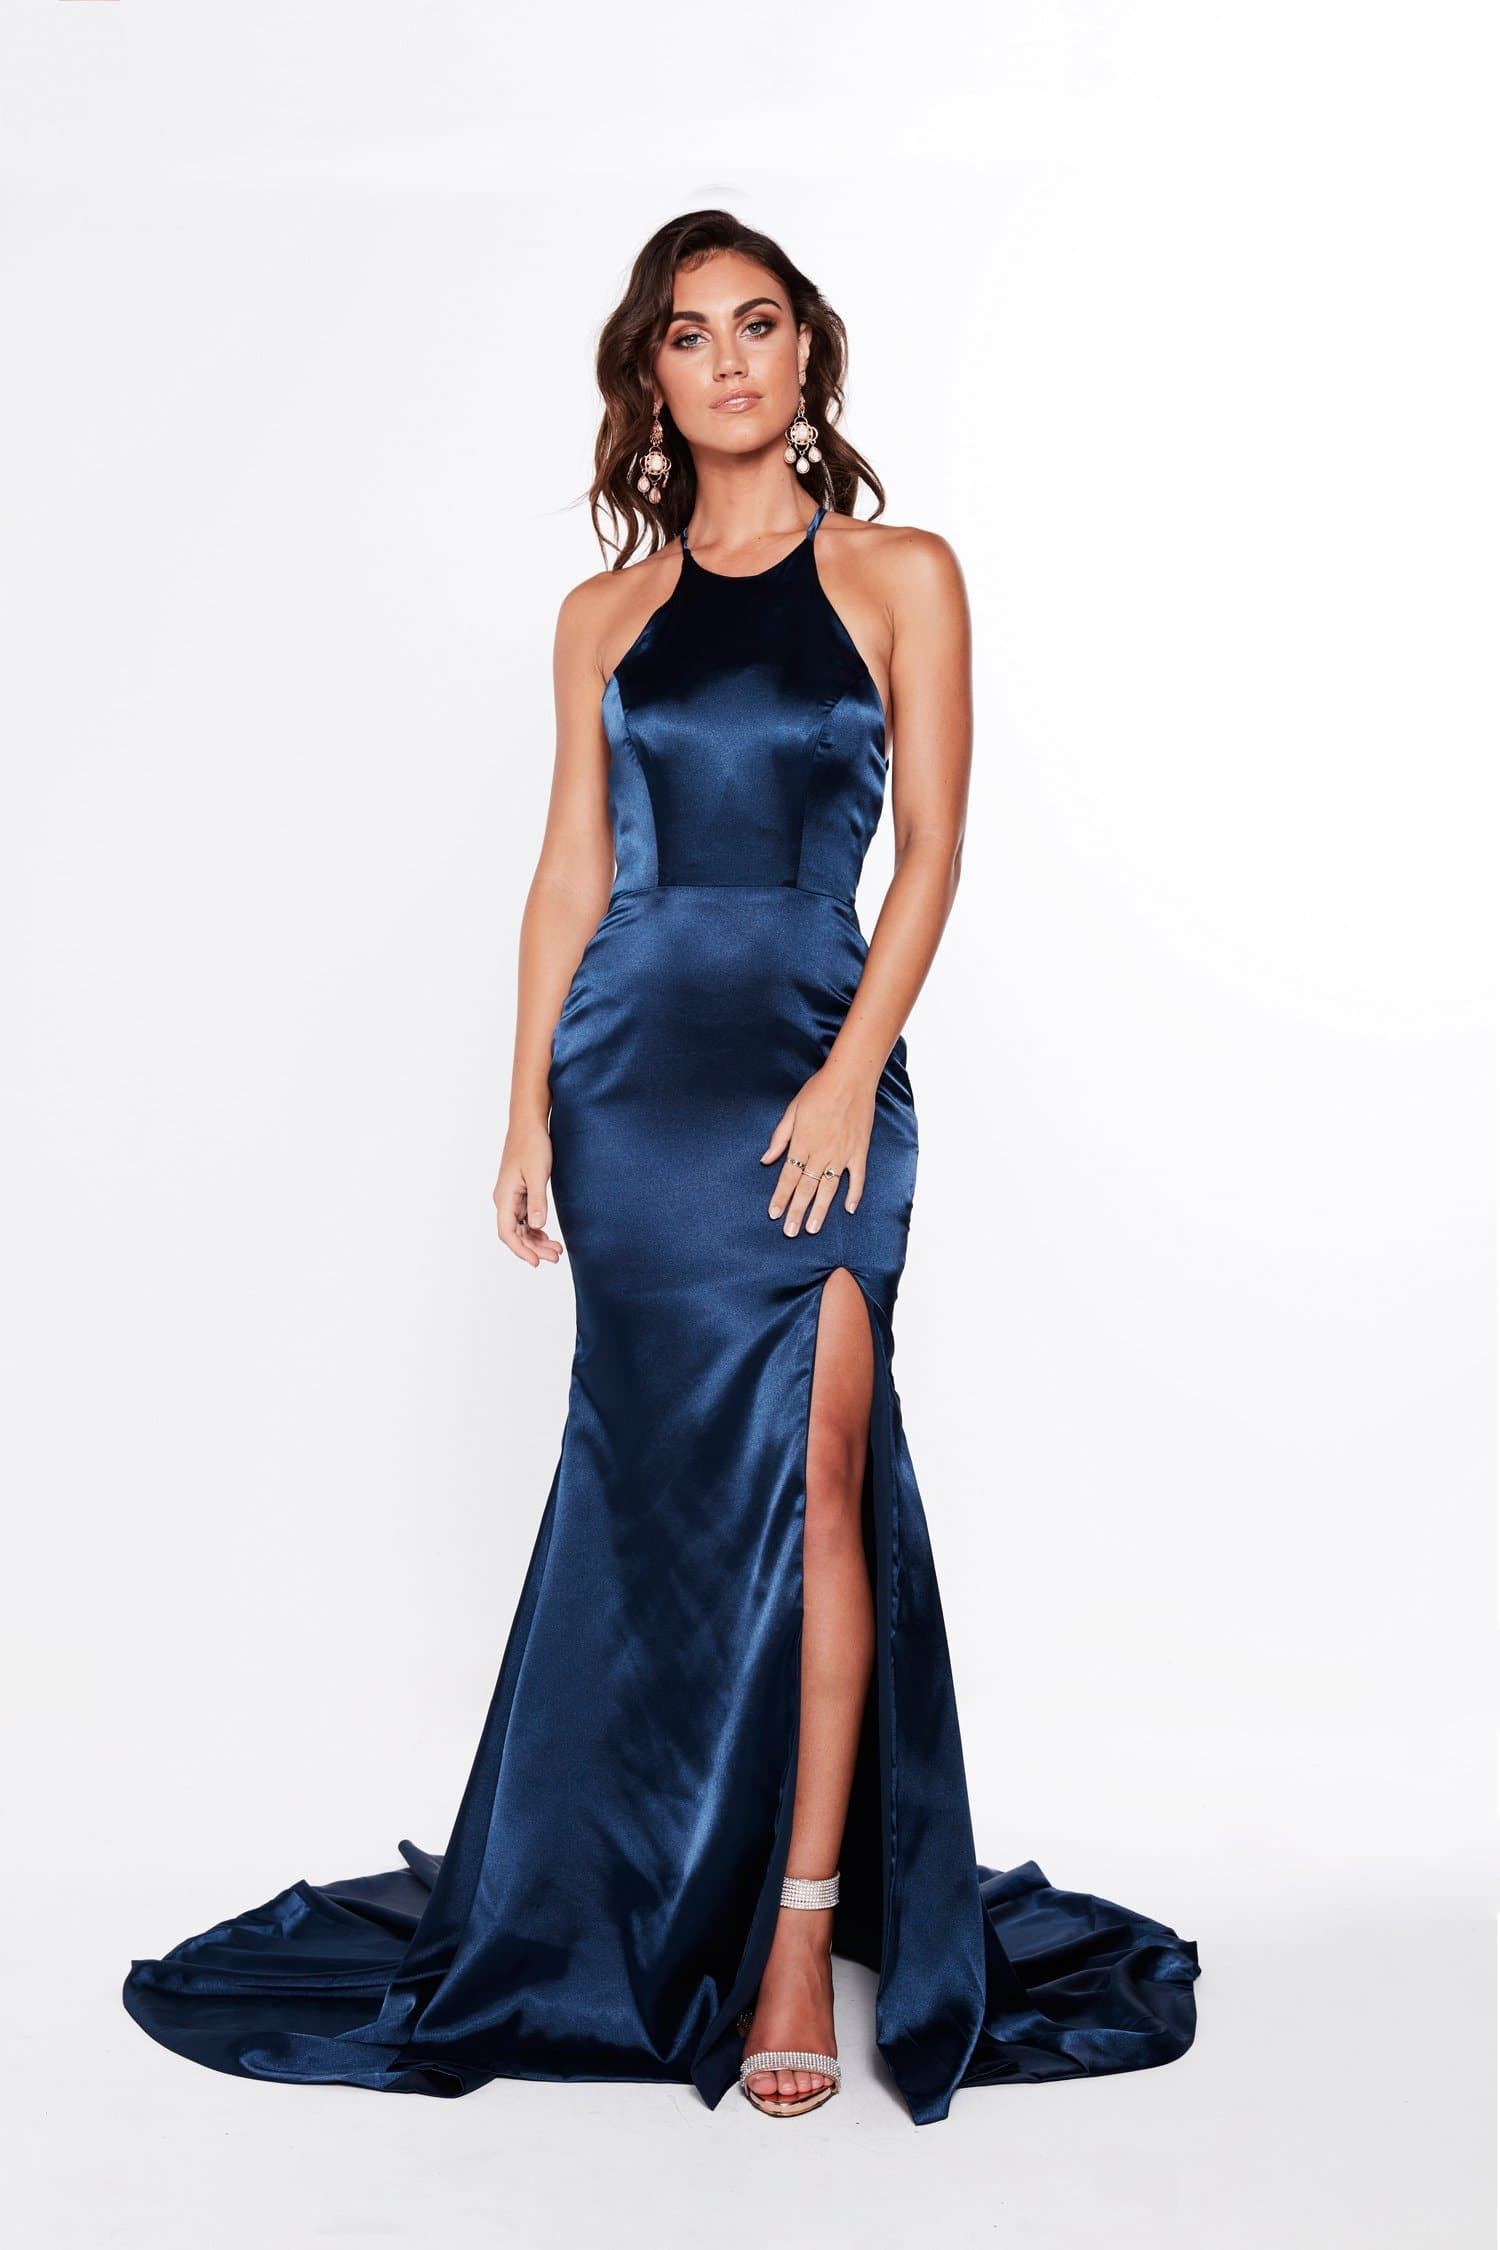 A&N Kiara - Navy Satin Gown with Lace Up Back and Side Slit